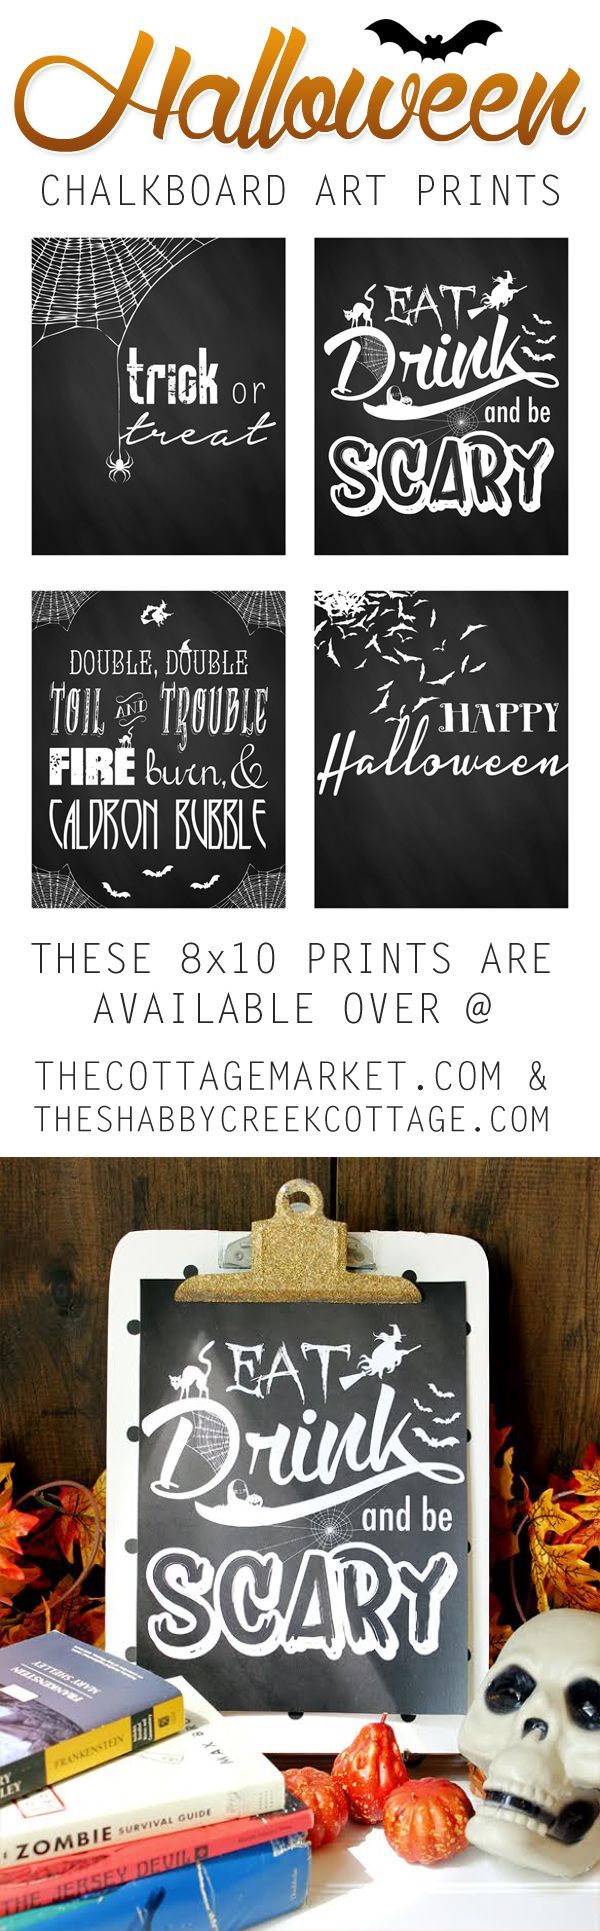 top running shoes for plantar fasciitis Free Printable Halloween Chalkboard Art   The Cottage Market